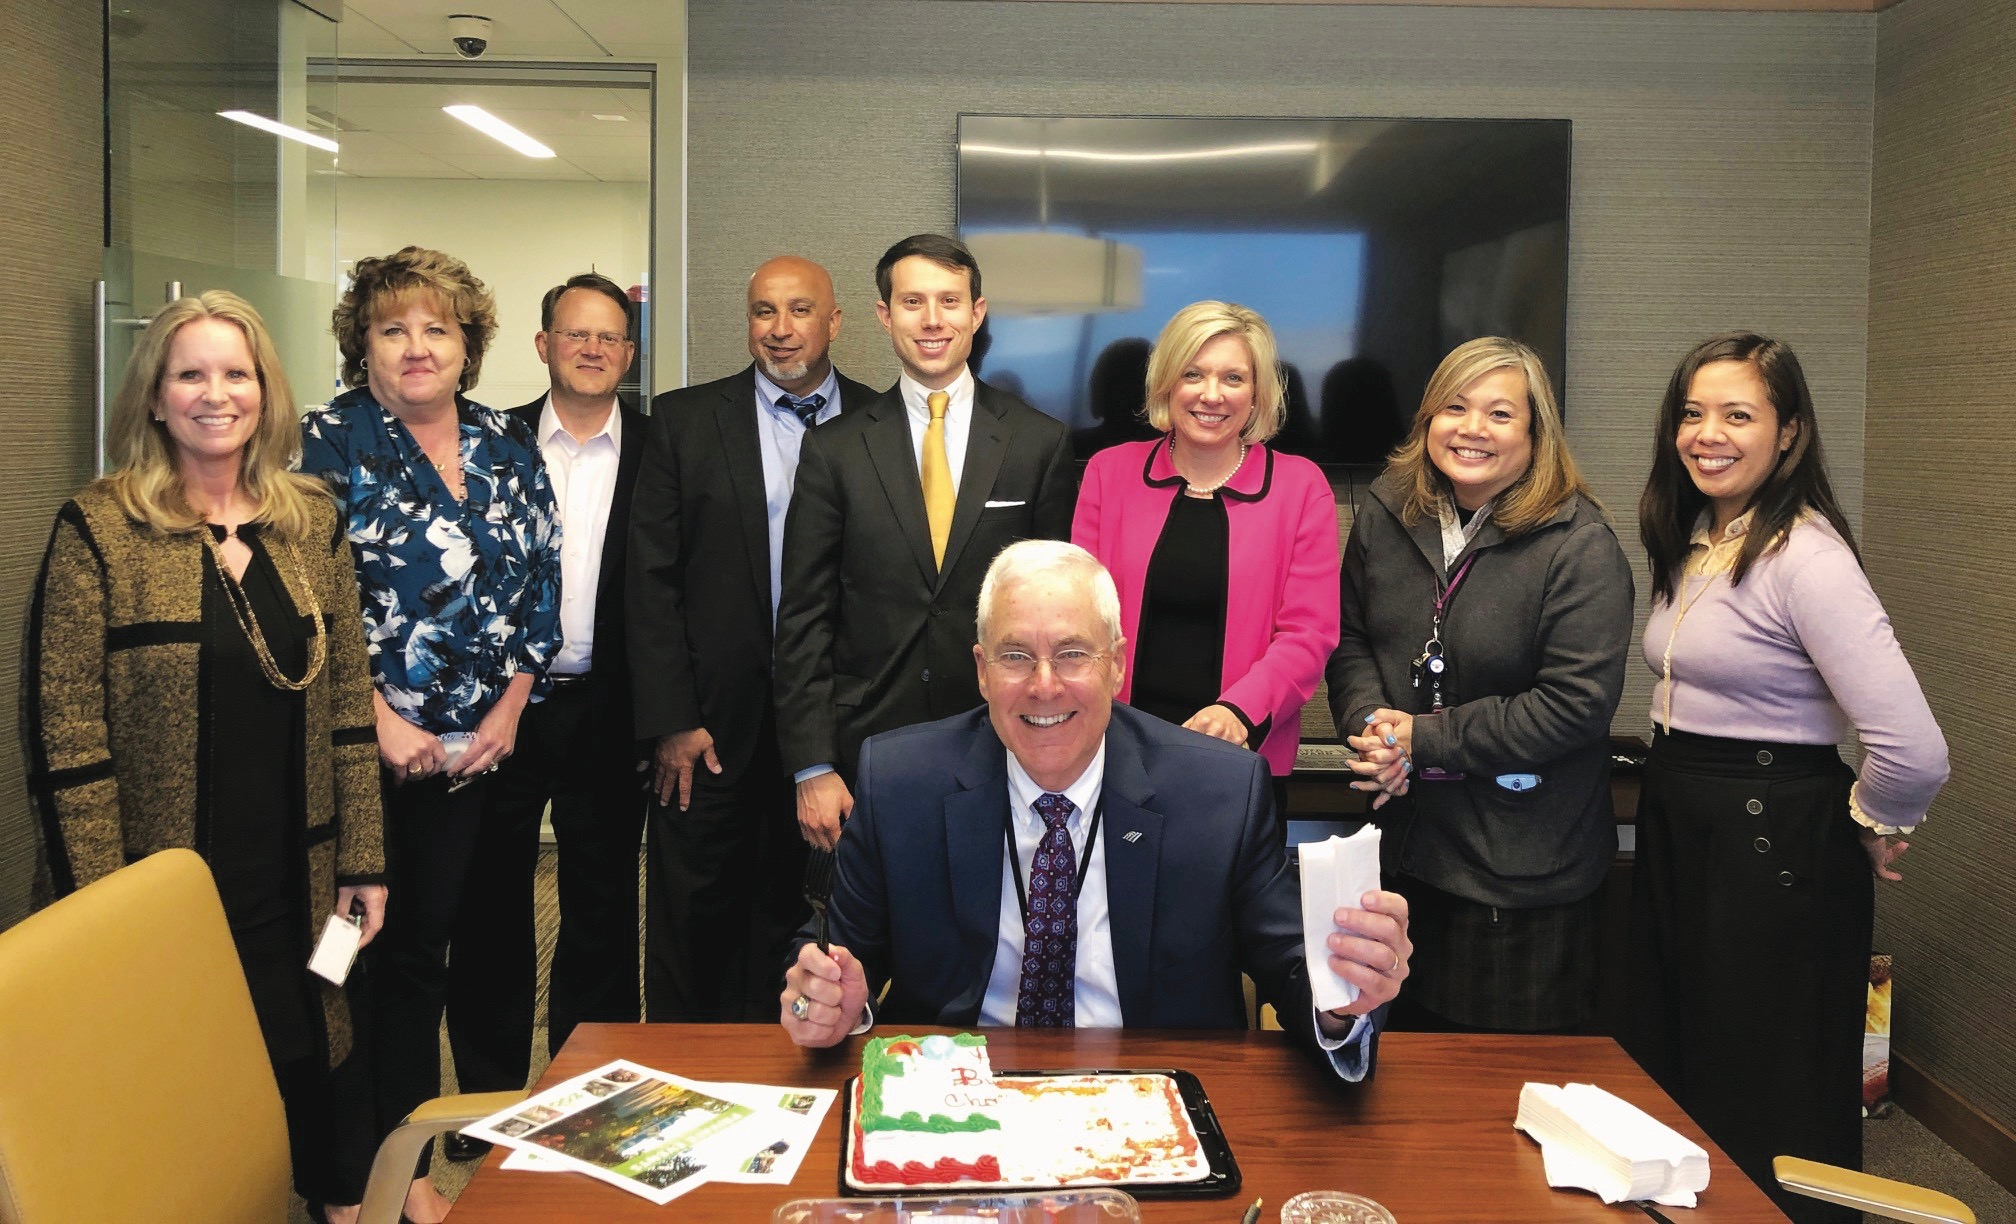 Bank of America, colleagues celebrating a birthday